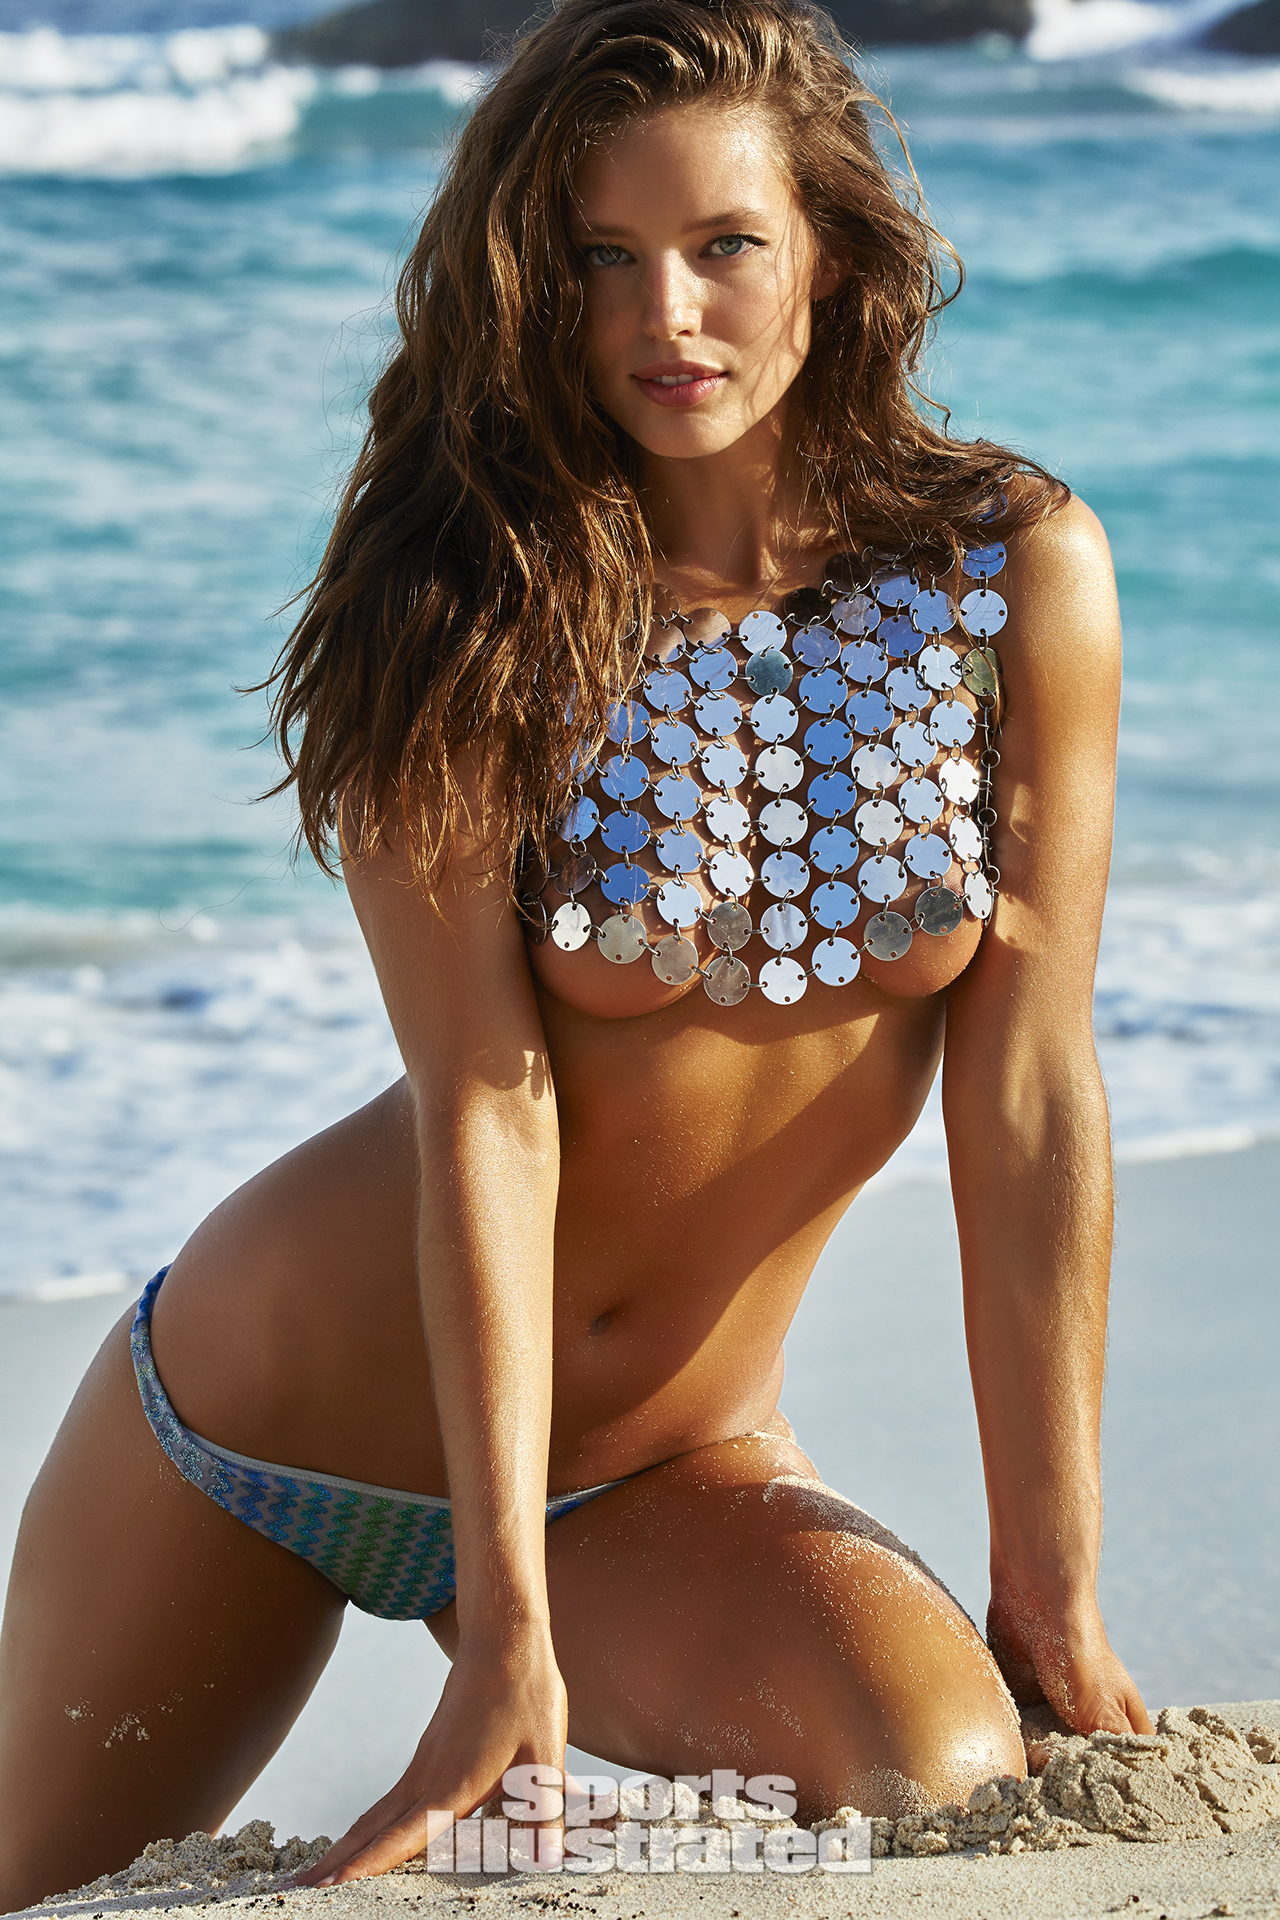 Emily DiDonato was photographed by James Macari in Turks & Caicos. Top by FANNIE SCHIAVONI. Swimsuit by Missoni.